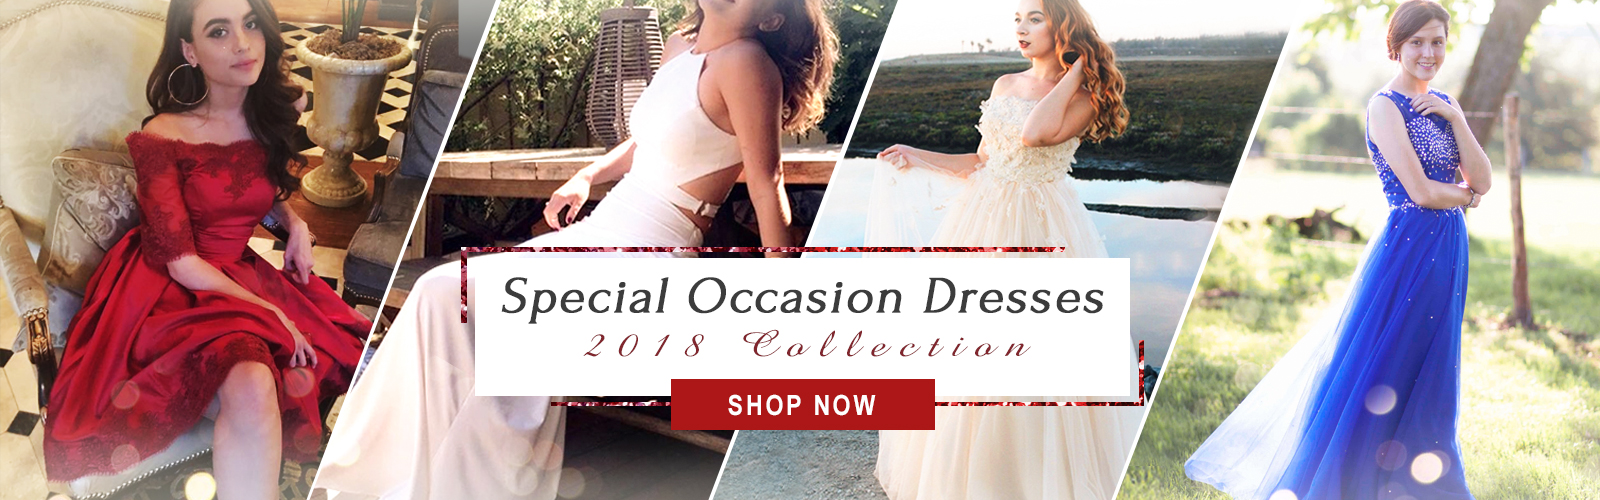 JJ'sHouse Special Occasion Dresses